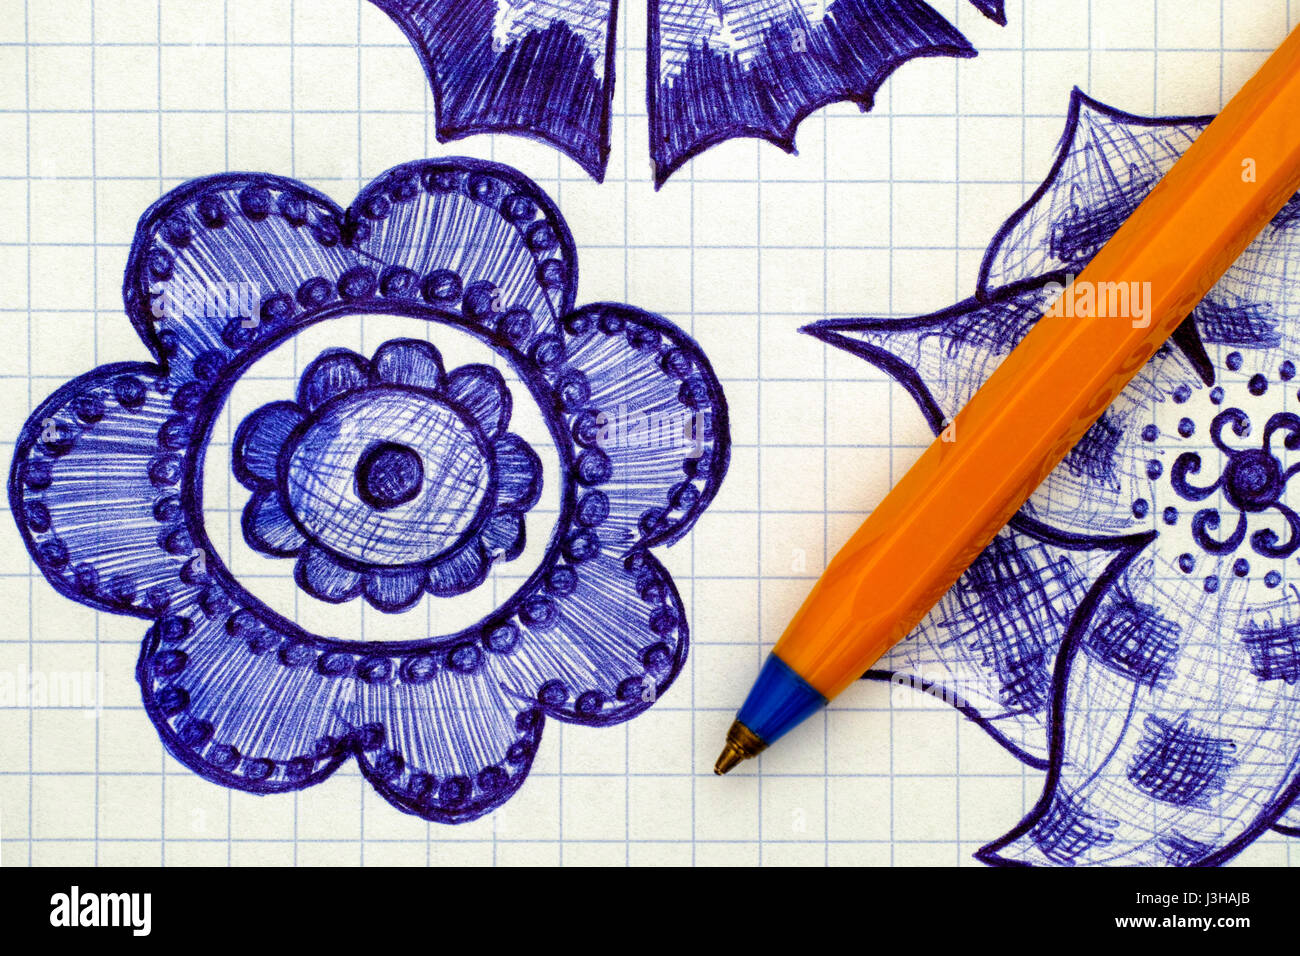 Close-up of hand drawn flower on sheet of checkered paper with pen. Doodle style. - Stock Image